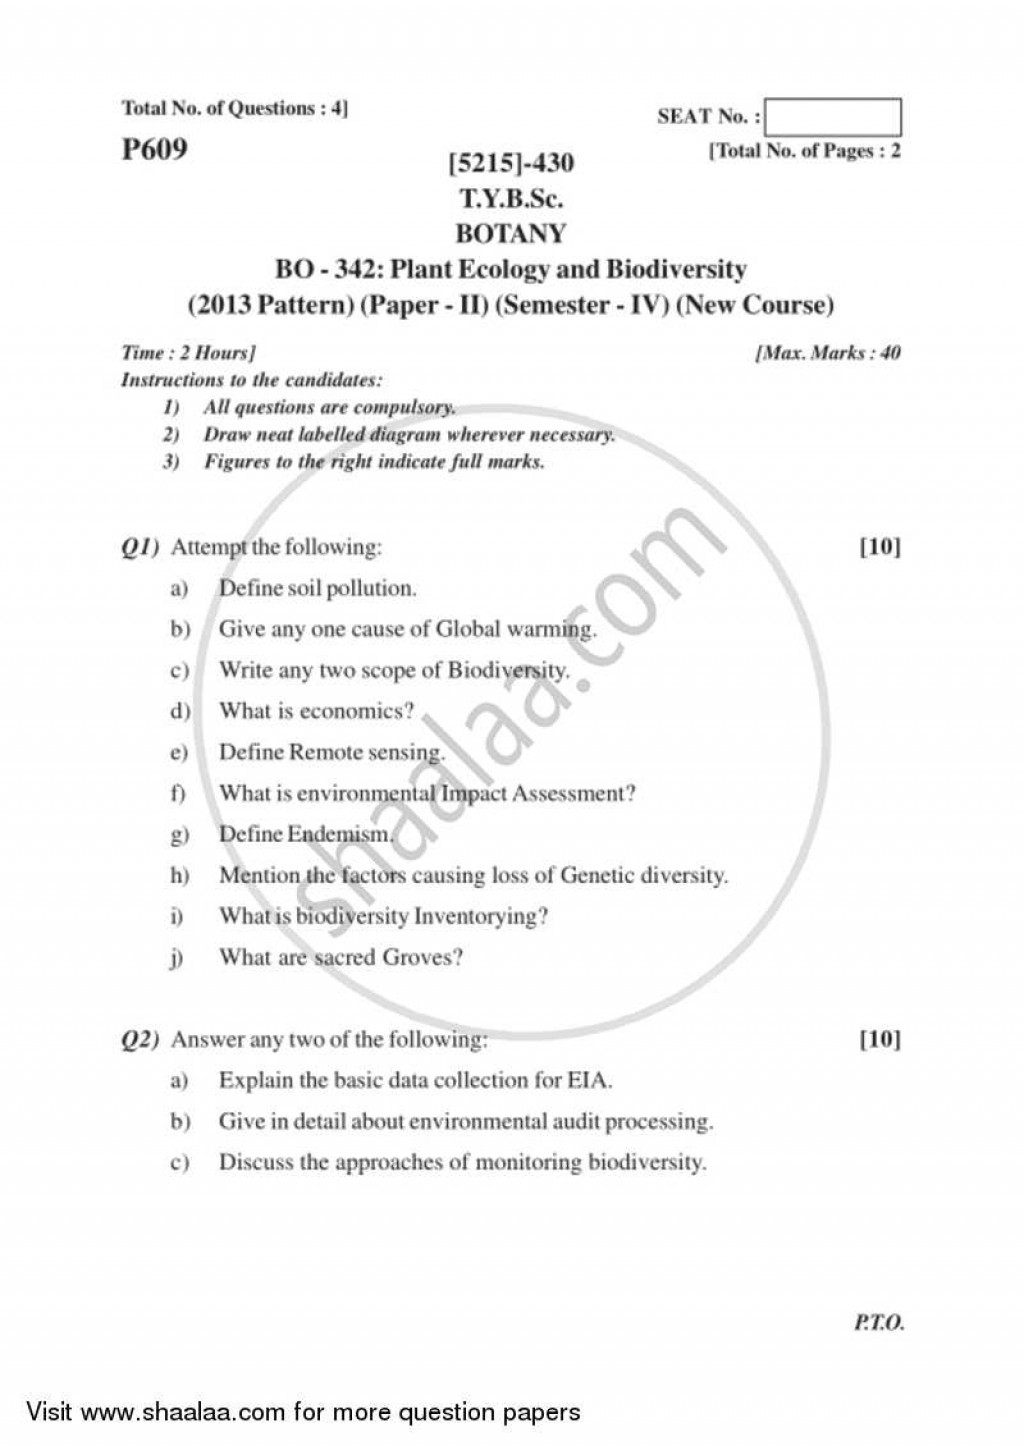 017 Essay Example University Of Pune Bachelor Bsc Plant Ecology Biodiversity Semester Tybsc Pattern 2ccae482ce96d4f1d9d32461736d16bdc Phenomenal Topics Questions Large